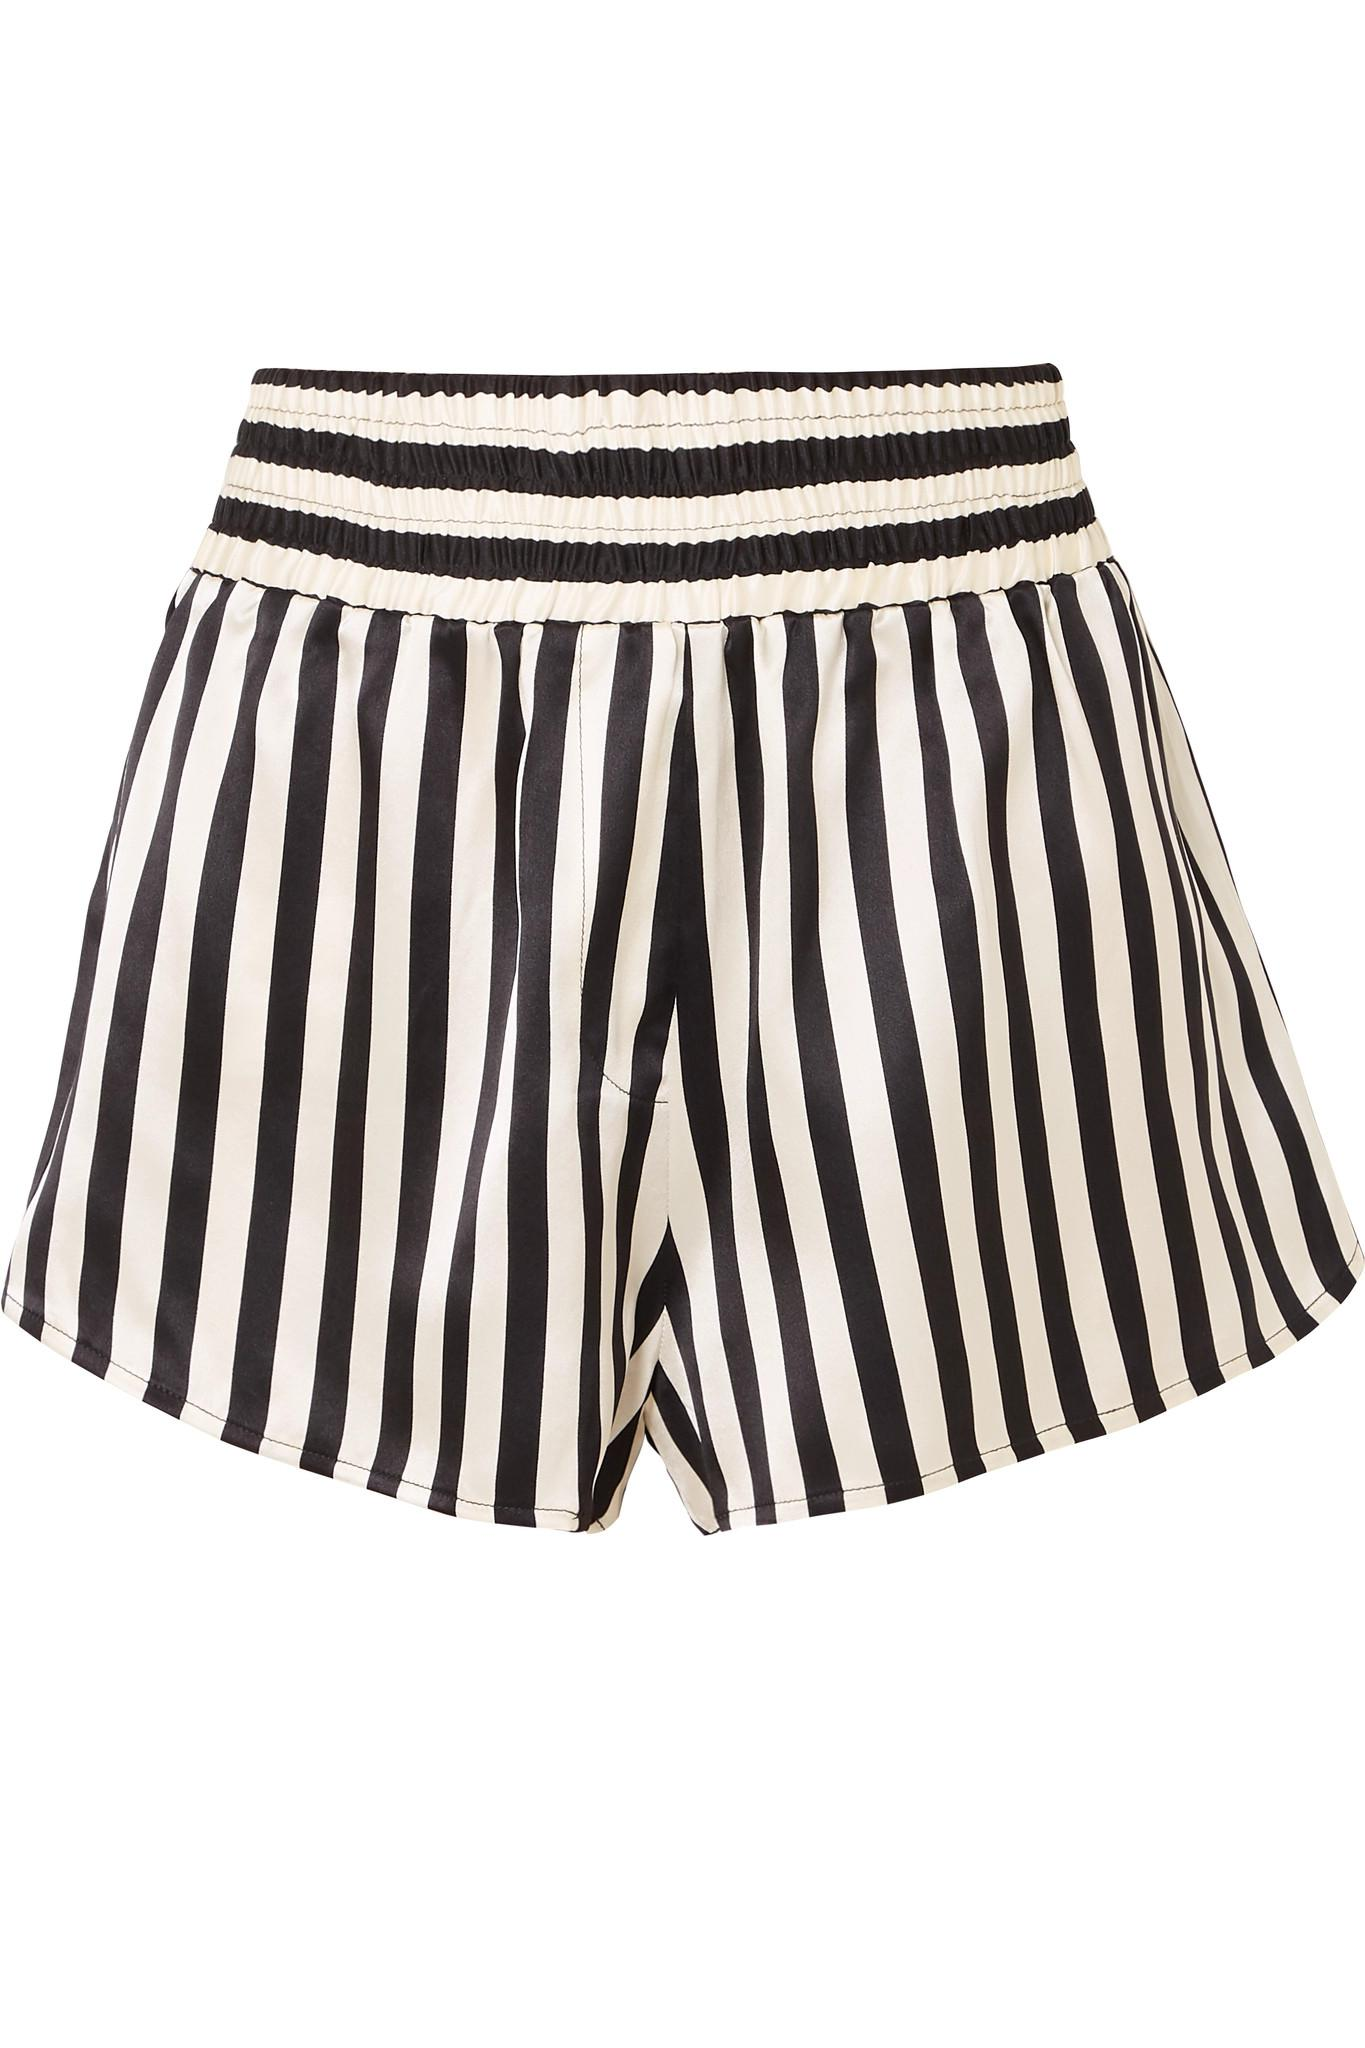 Morgan Lane. Women s Black + Amanda Fatherazi Corey Appliquéd Striped Silk-charmeuse  Pajama Shorts 17e3656a4